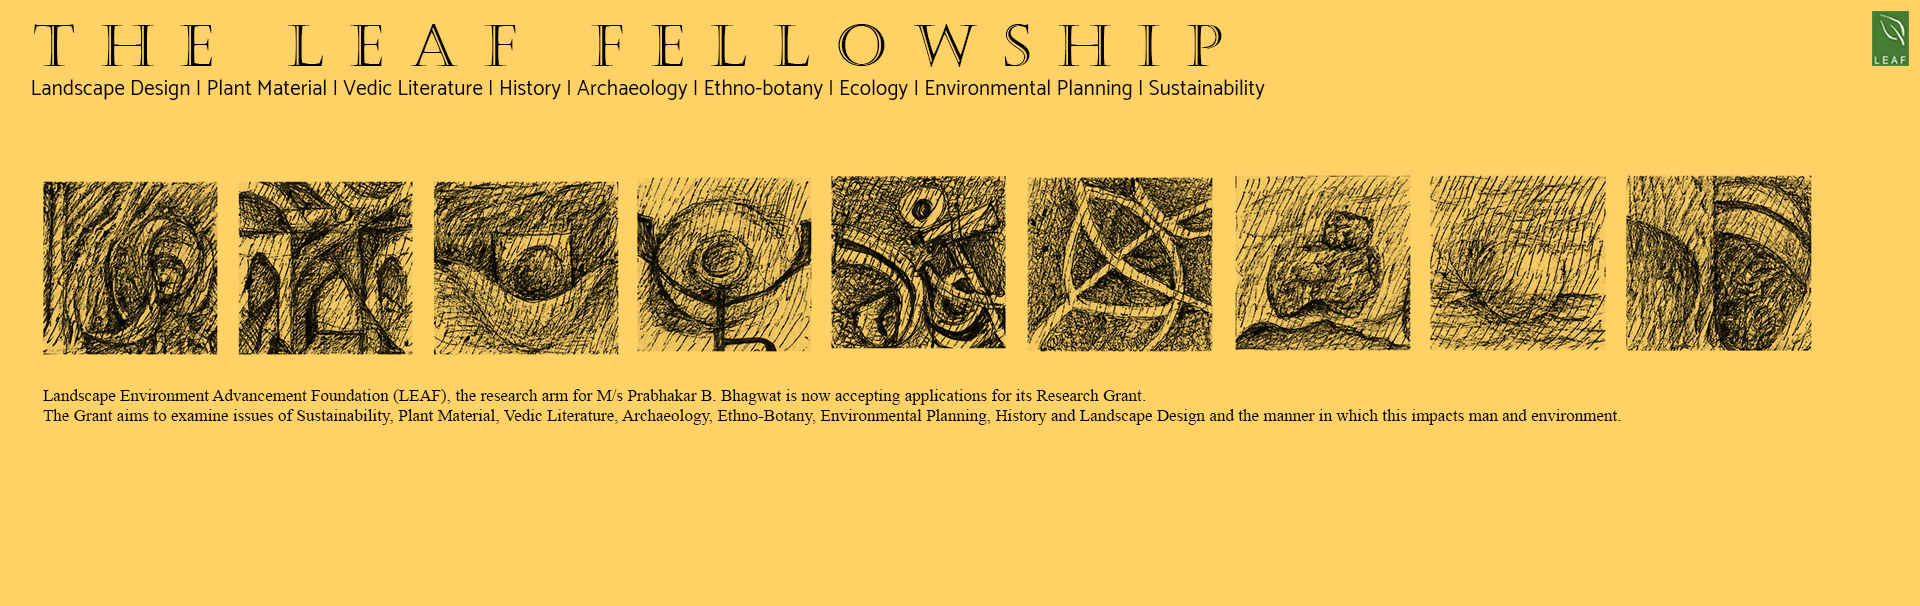 leaf_fellow_inner_banner